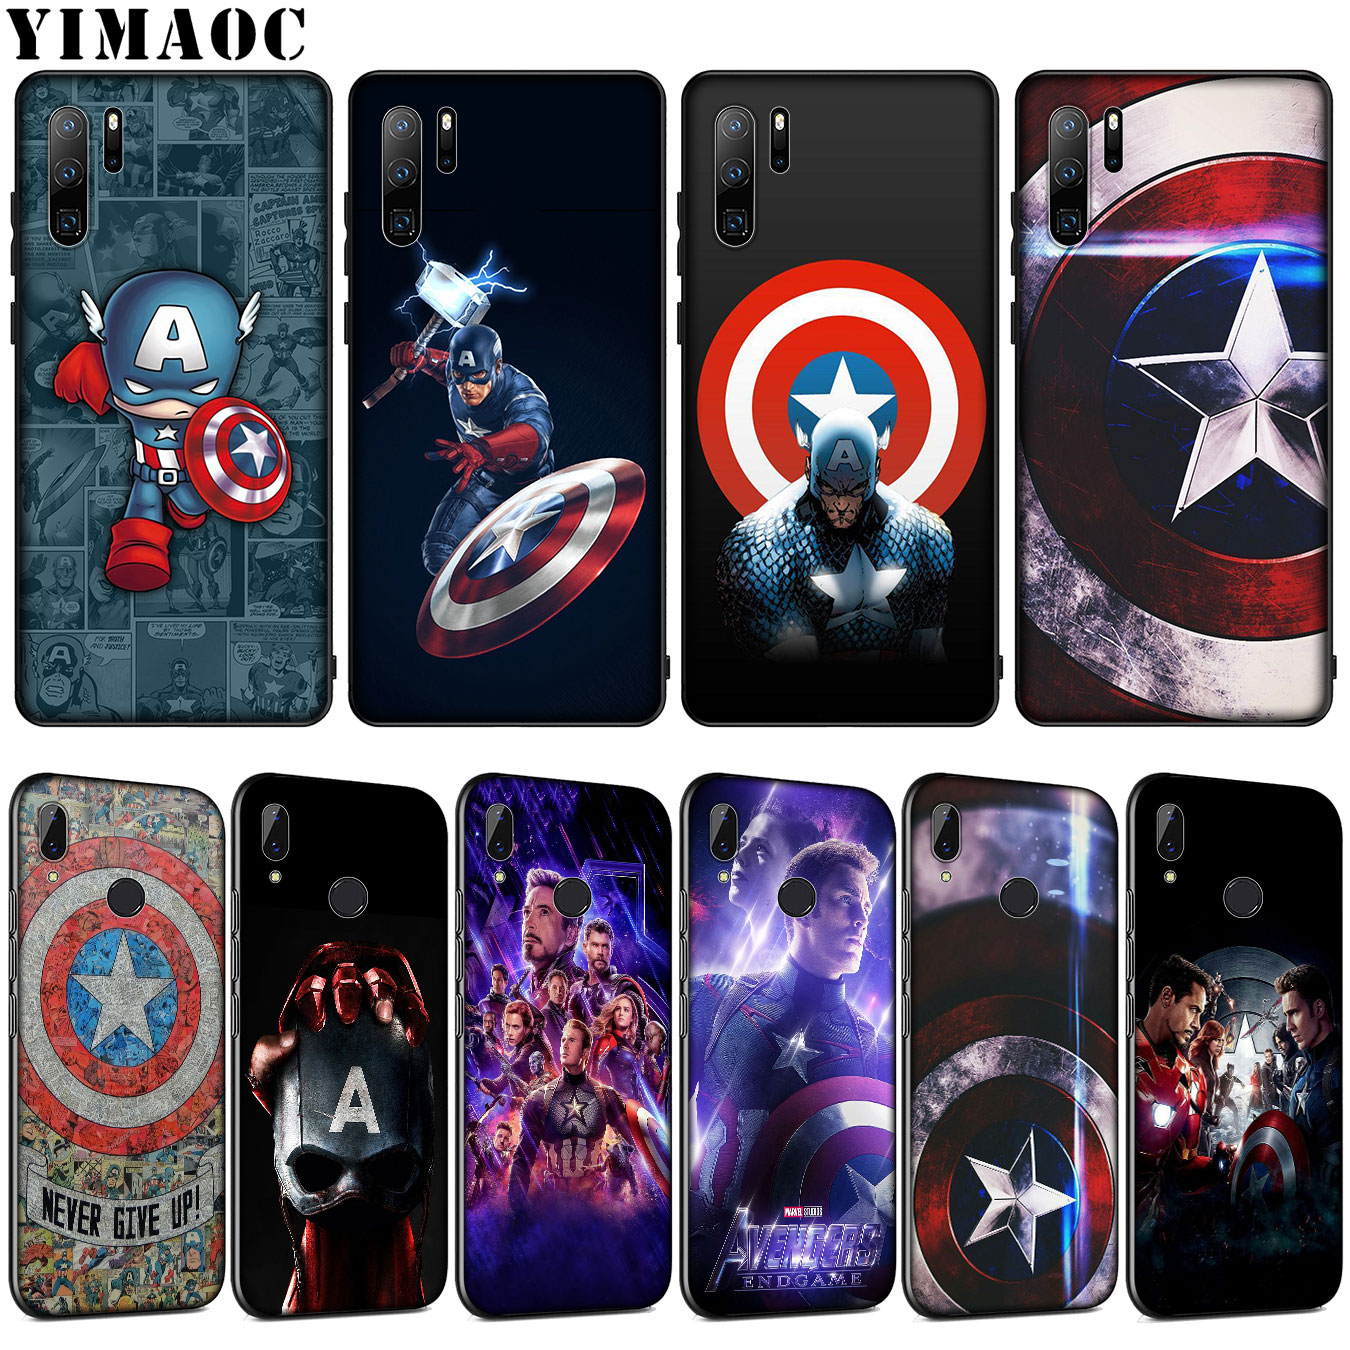 YIMAOC Marvel Captain America shield Soft Silicone <font><b>Case</b></font> for <font><b>Huawei</b></font> P30 P20 Pro <font><b>P10</b></font> P9 Lite Mini 2017 2016 Cover P Smart Z 2019 image